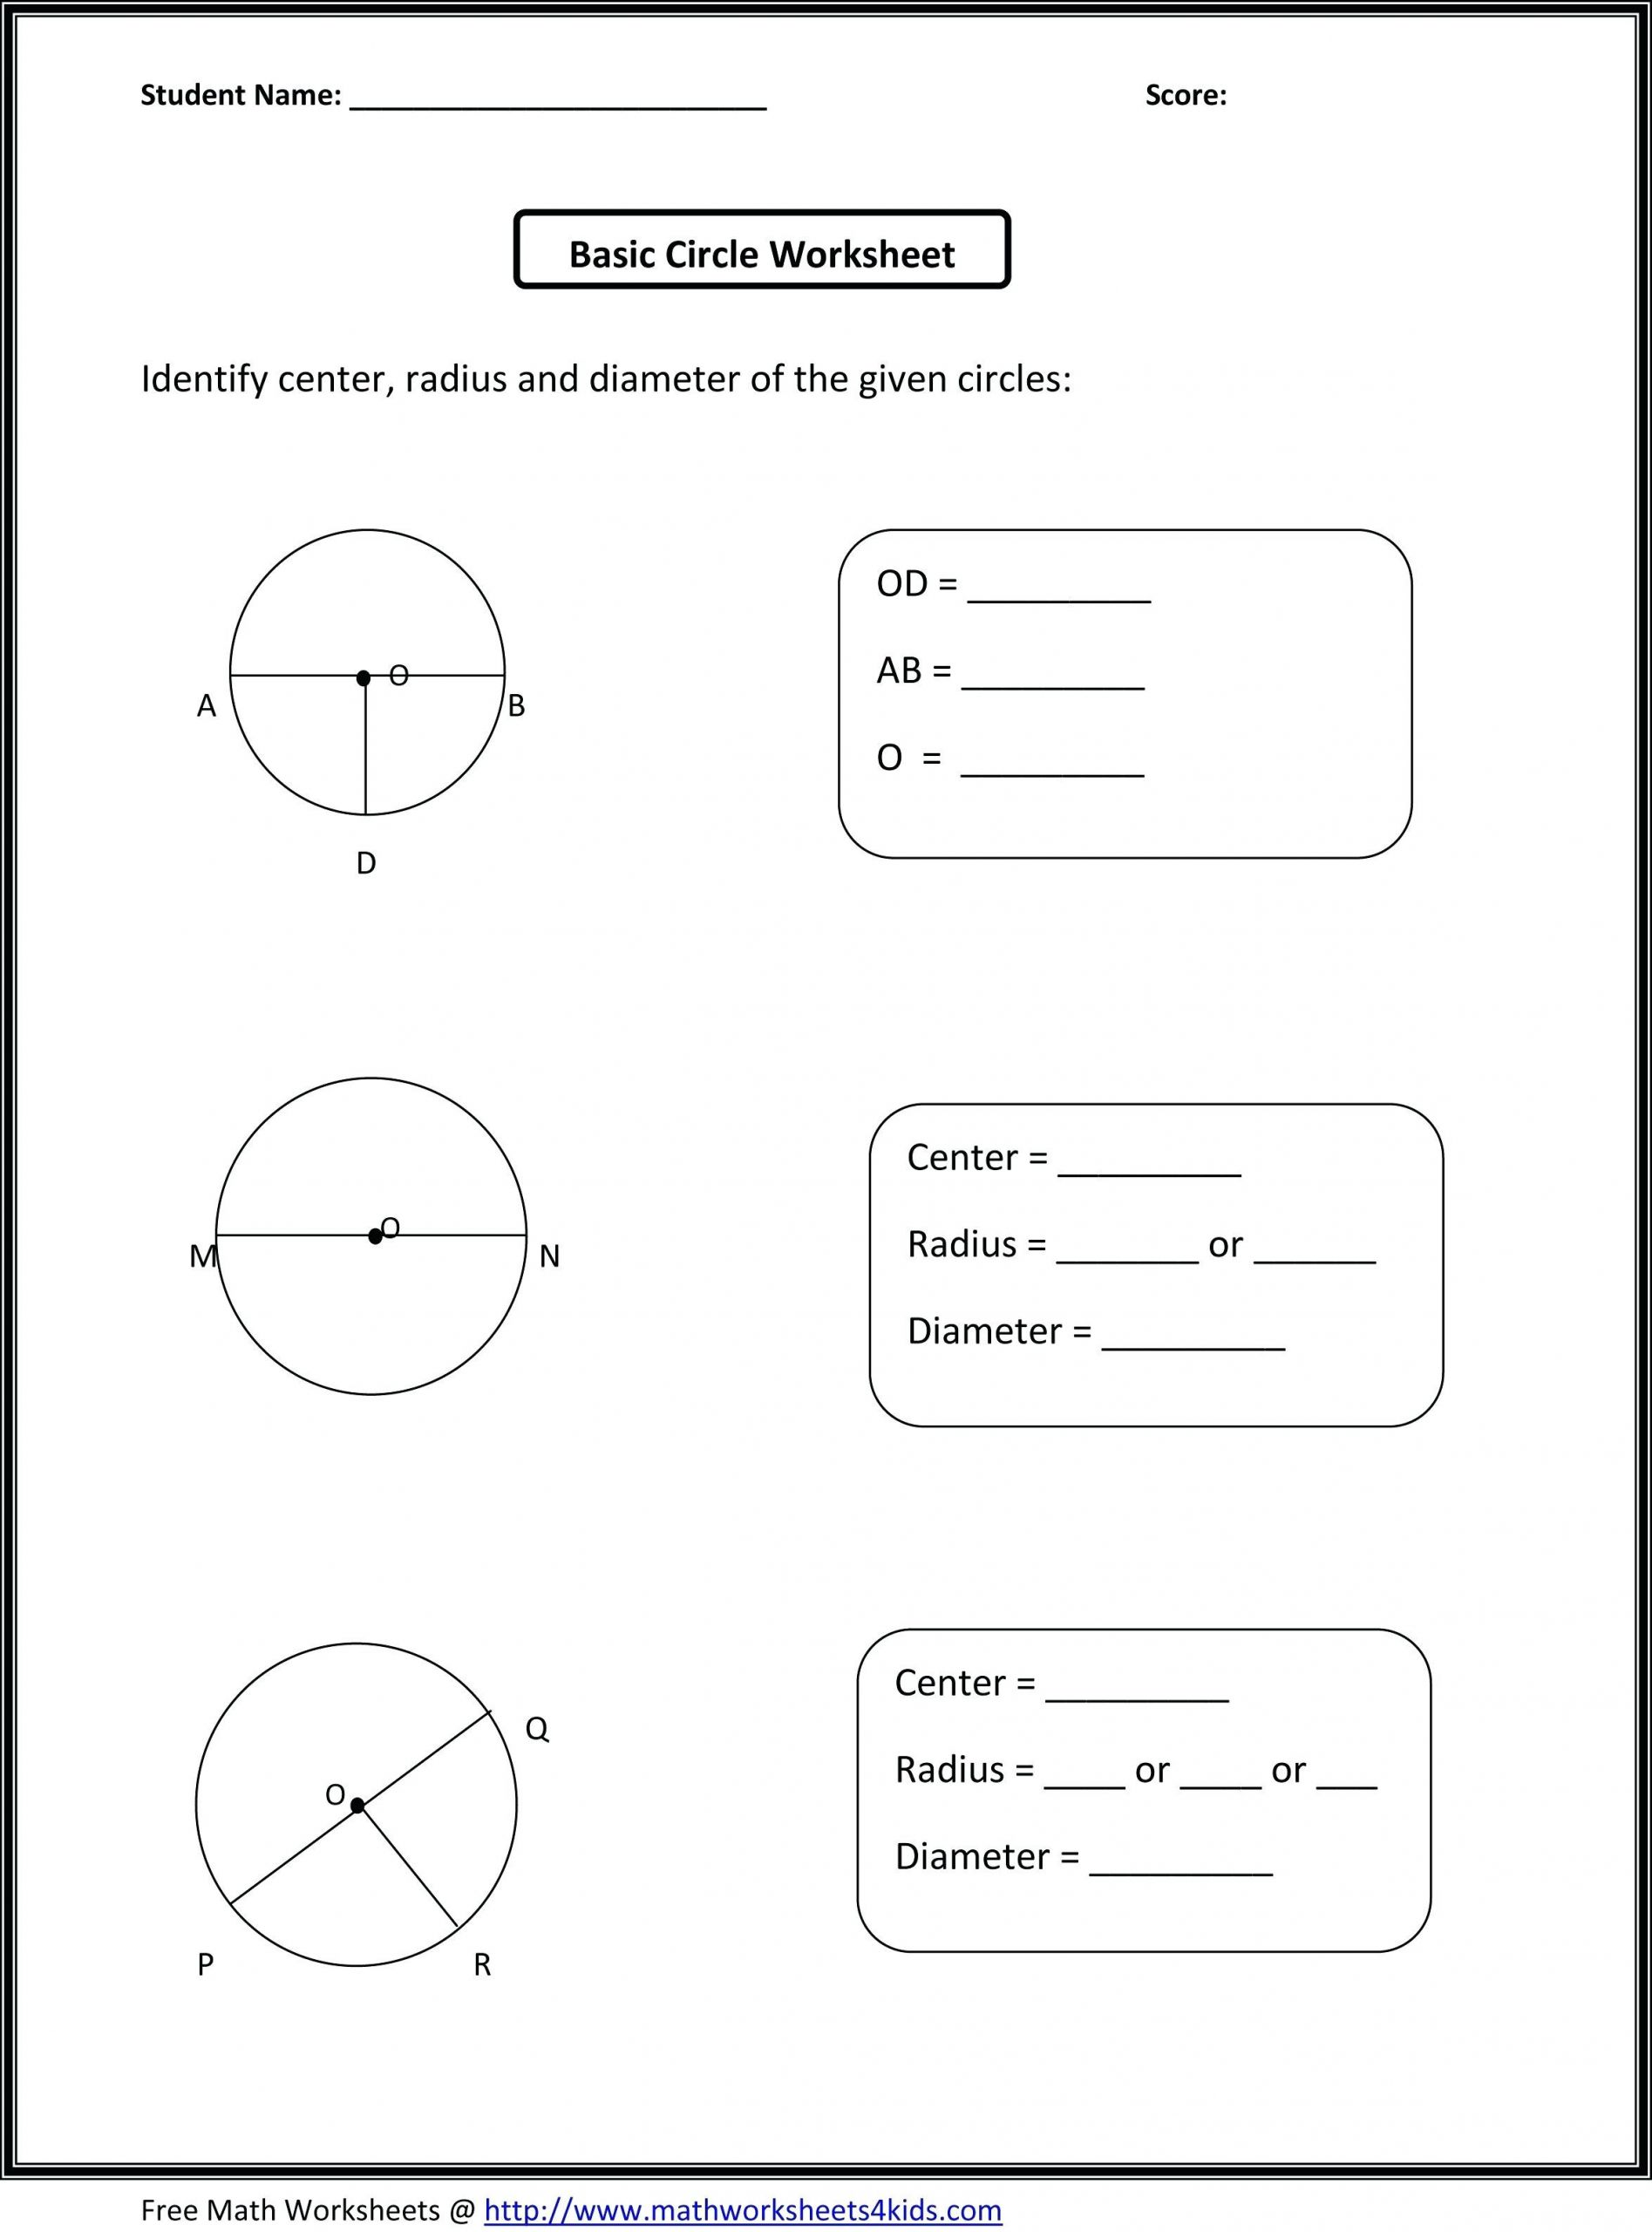 5 Free Math Worksheets First Grade 1 Subtraction Add And